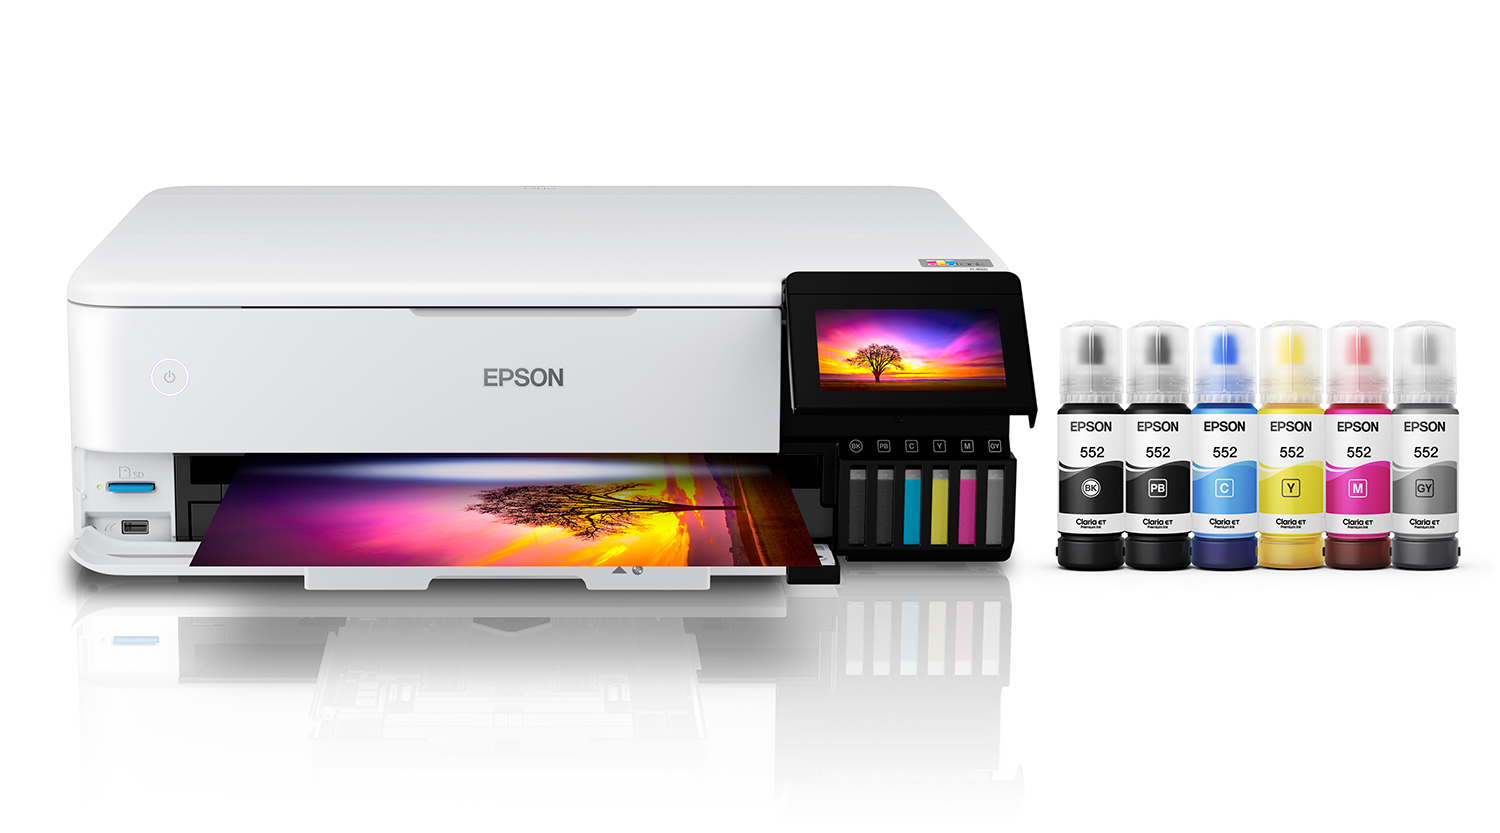 Photo of Epson 8550 printer